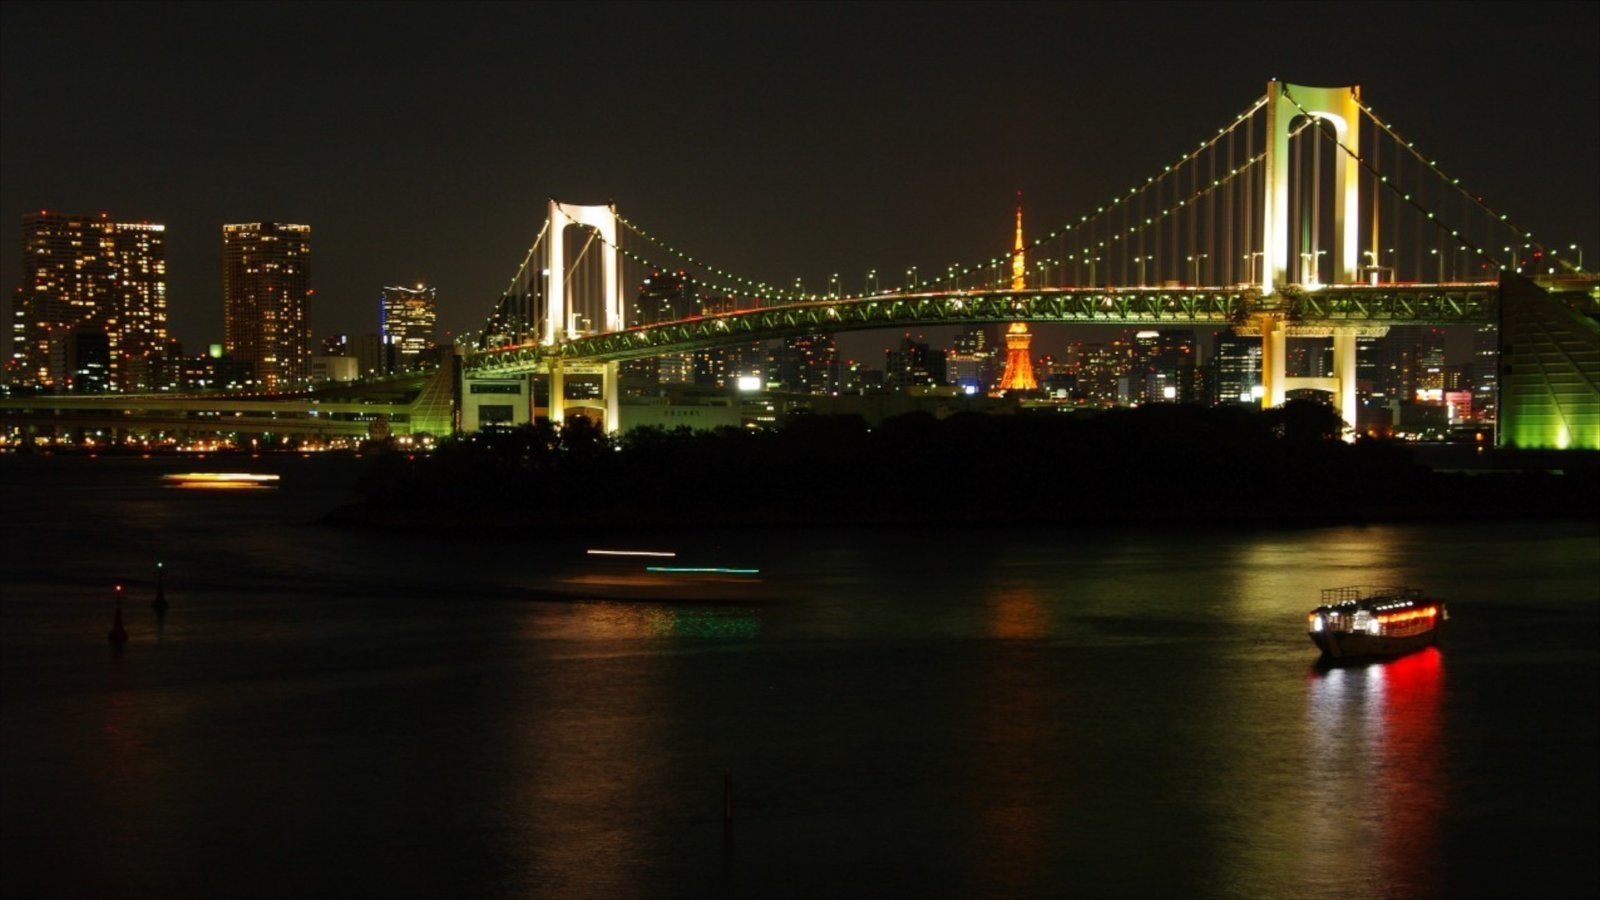 Tokyo featuring night scenes, a bridge and a city